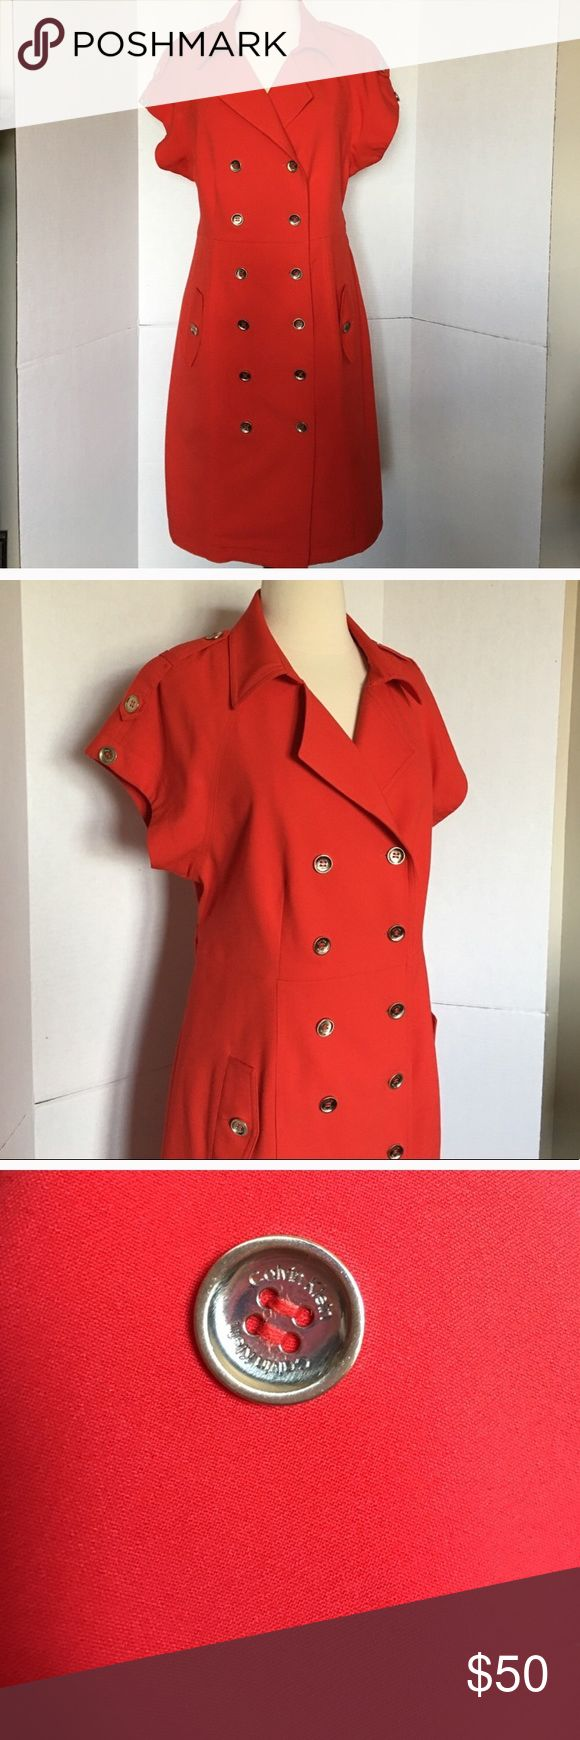 """Calvin Klein red dress size 14. ❤️❤️💋💋 NWOT Calvin Klein red dress size 14. ❤️❤️💋💋. Runs small . Measures: 38"""" lenght, 40"""" bust, 36"""" waist, 45"""" hips. 63 % Polyester, 33% rayon and 4% Spandex. Calvin Klein Dresses"""